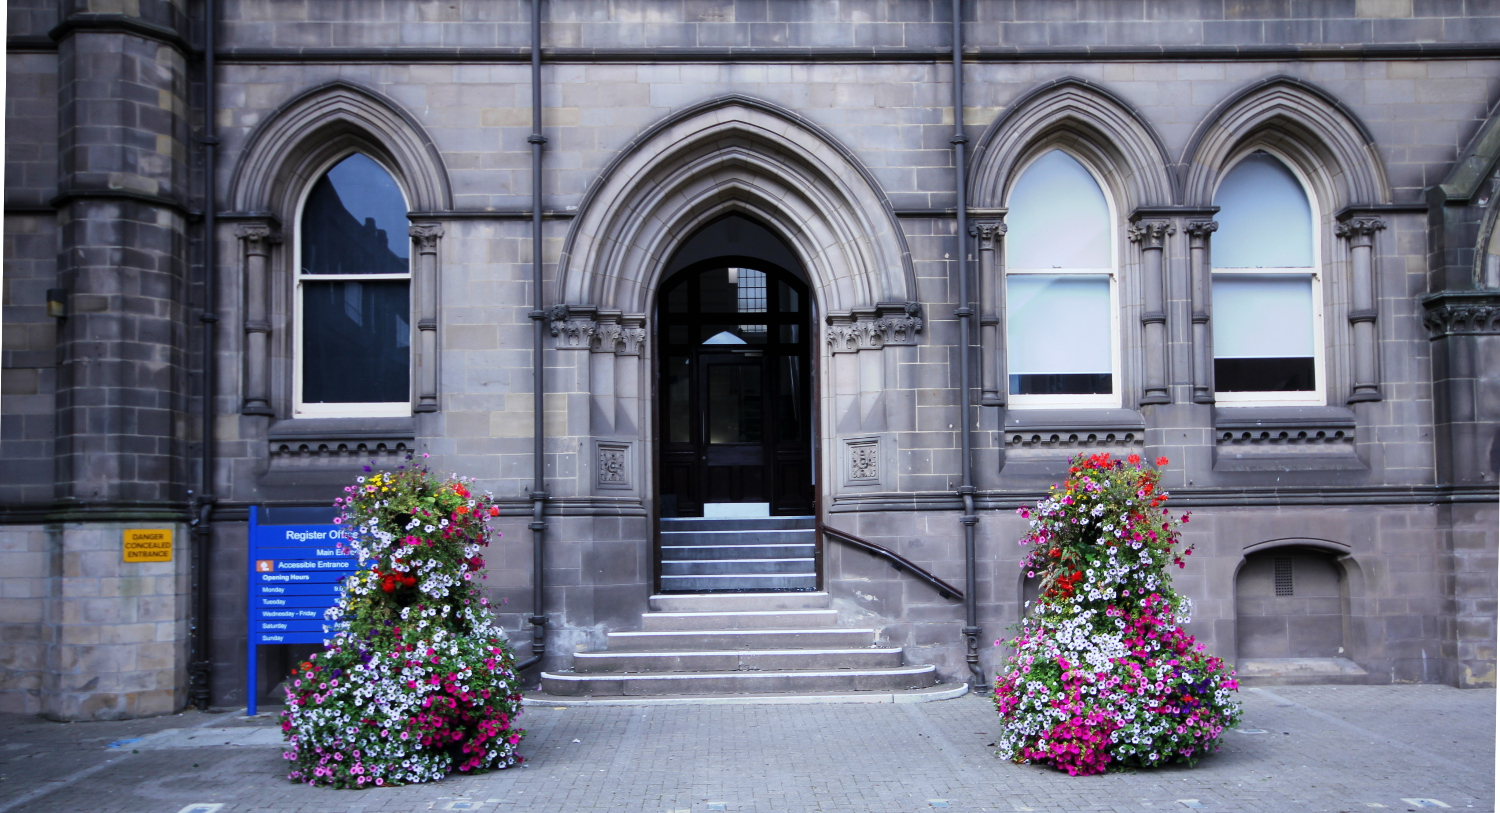 outside view of the Middlesbrough Register Office